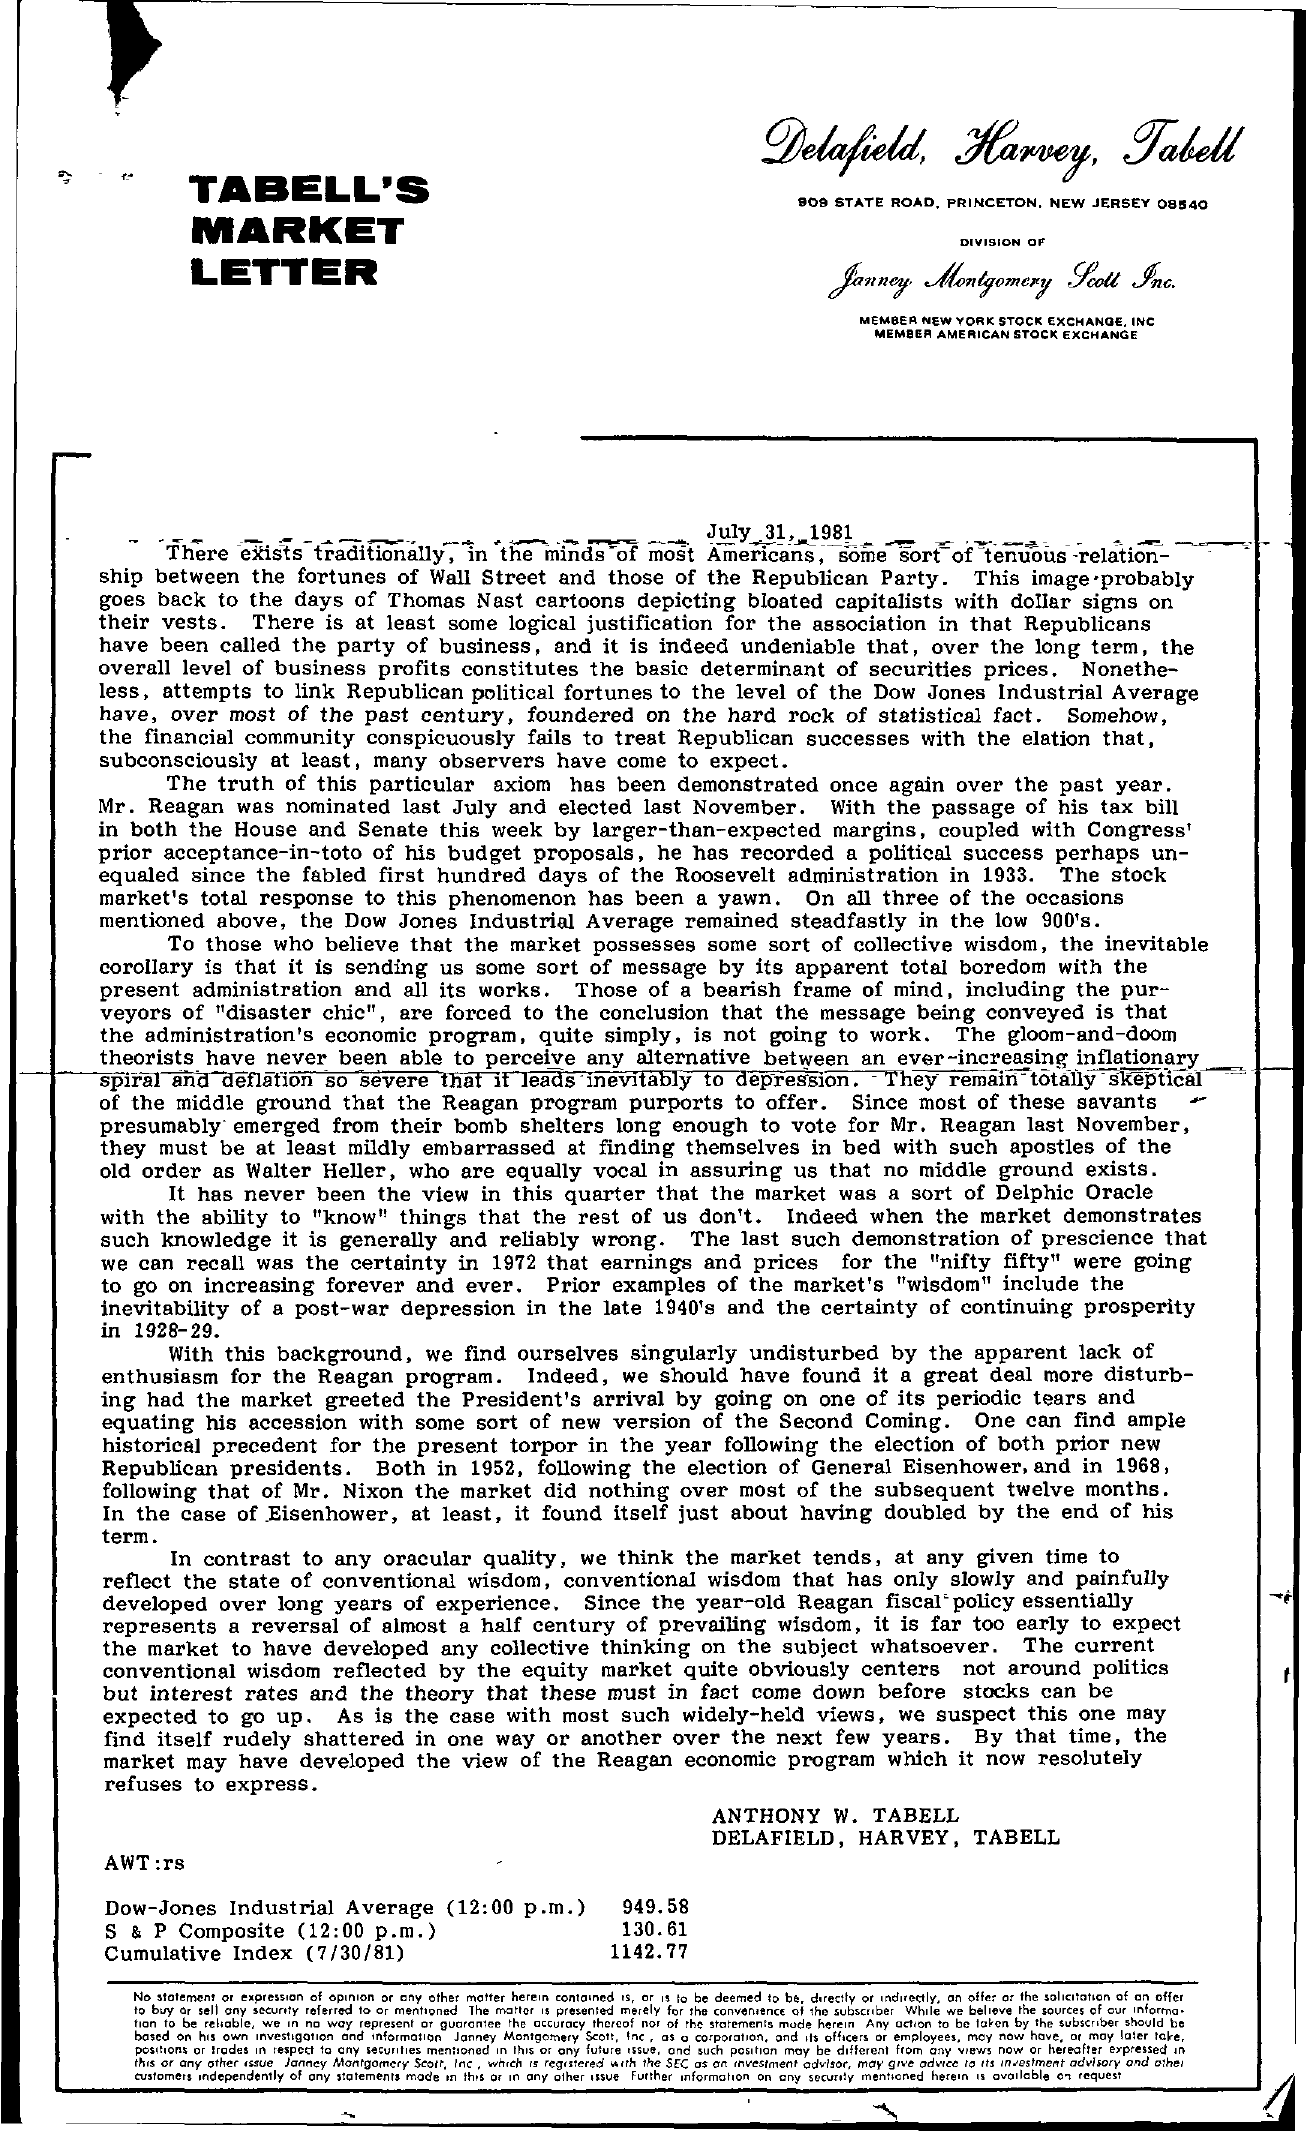 Tabell's Market Letter - July 31, 1981